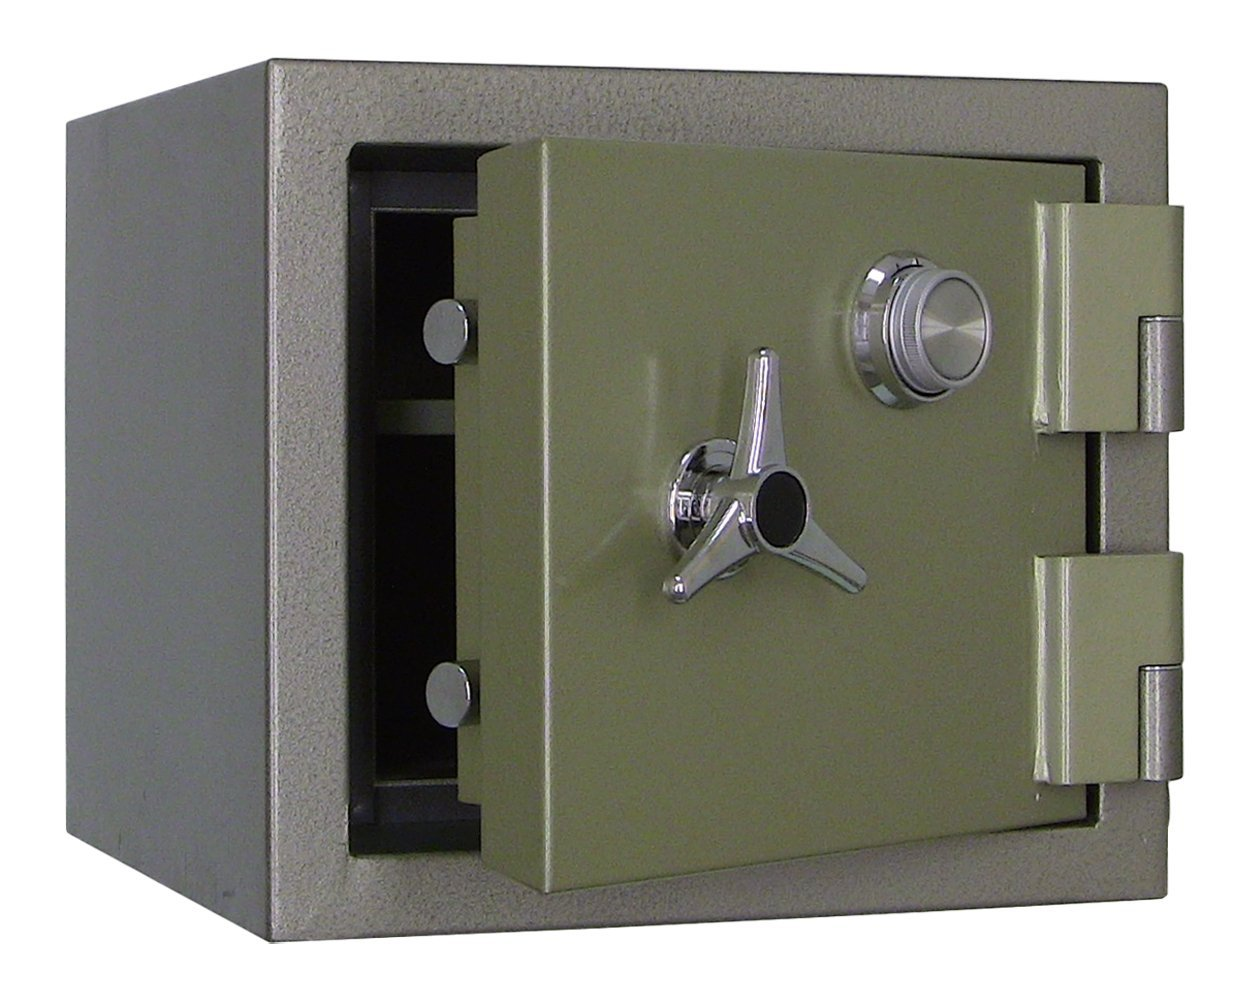 picture of the Steelwater AMSWFB-450. the model we believe is the best fireproof gun safe model for storing handguns.